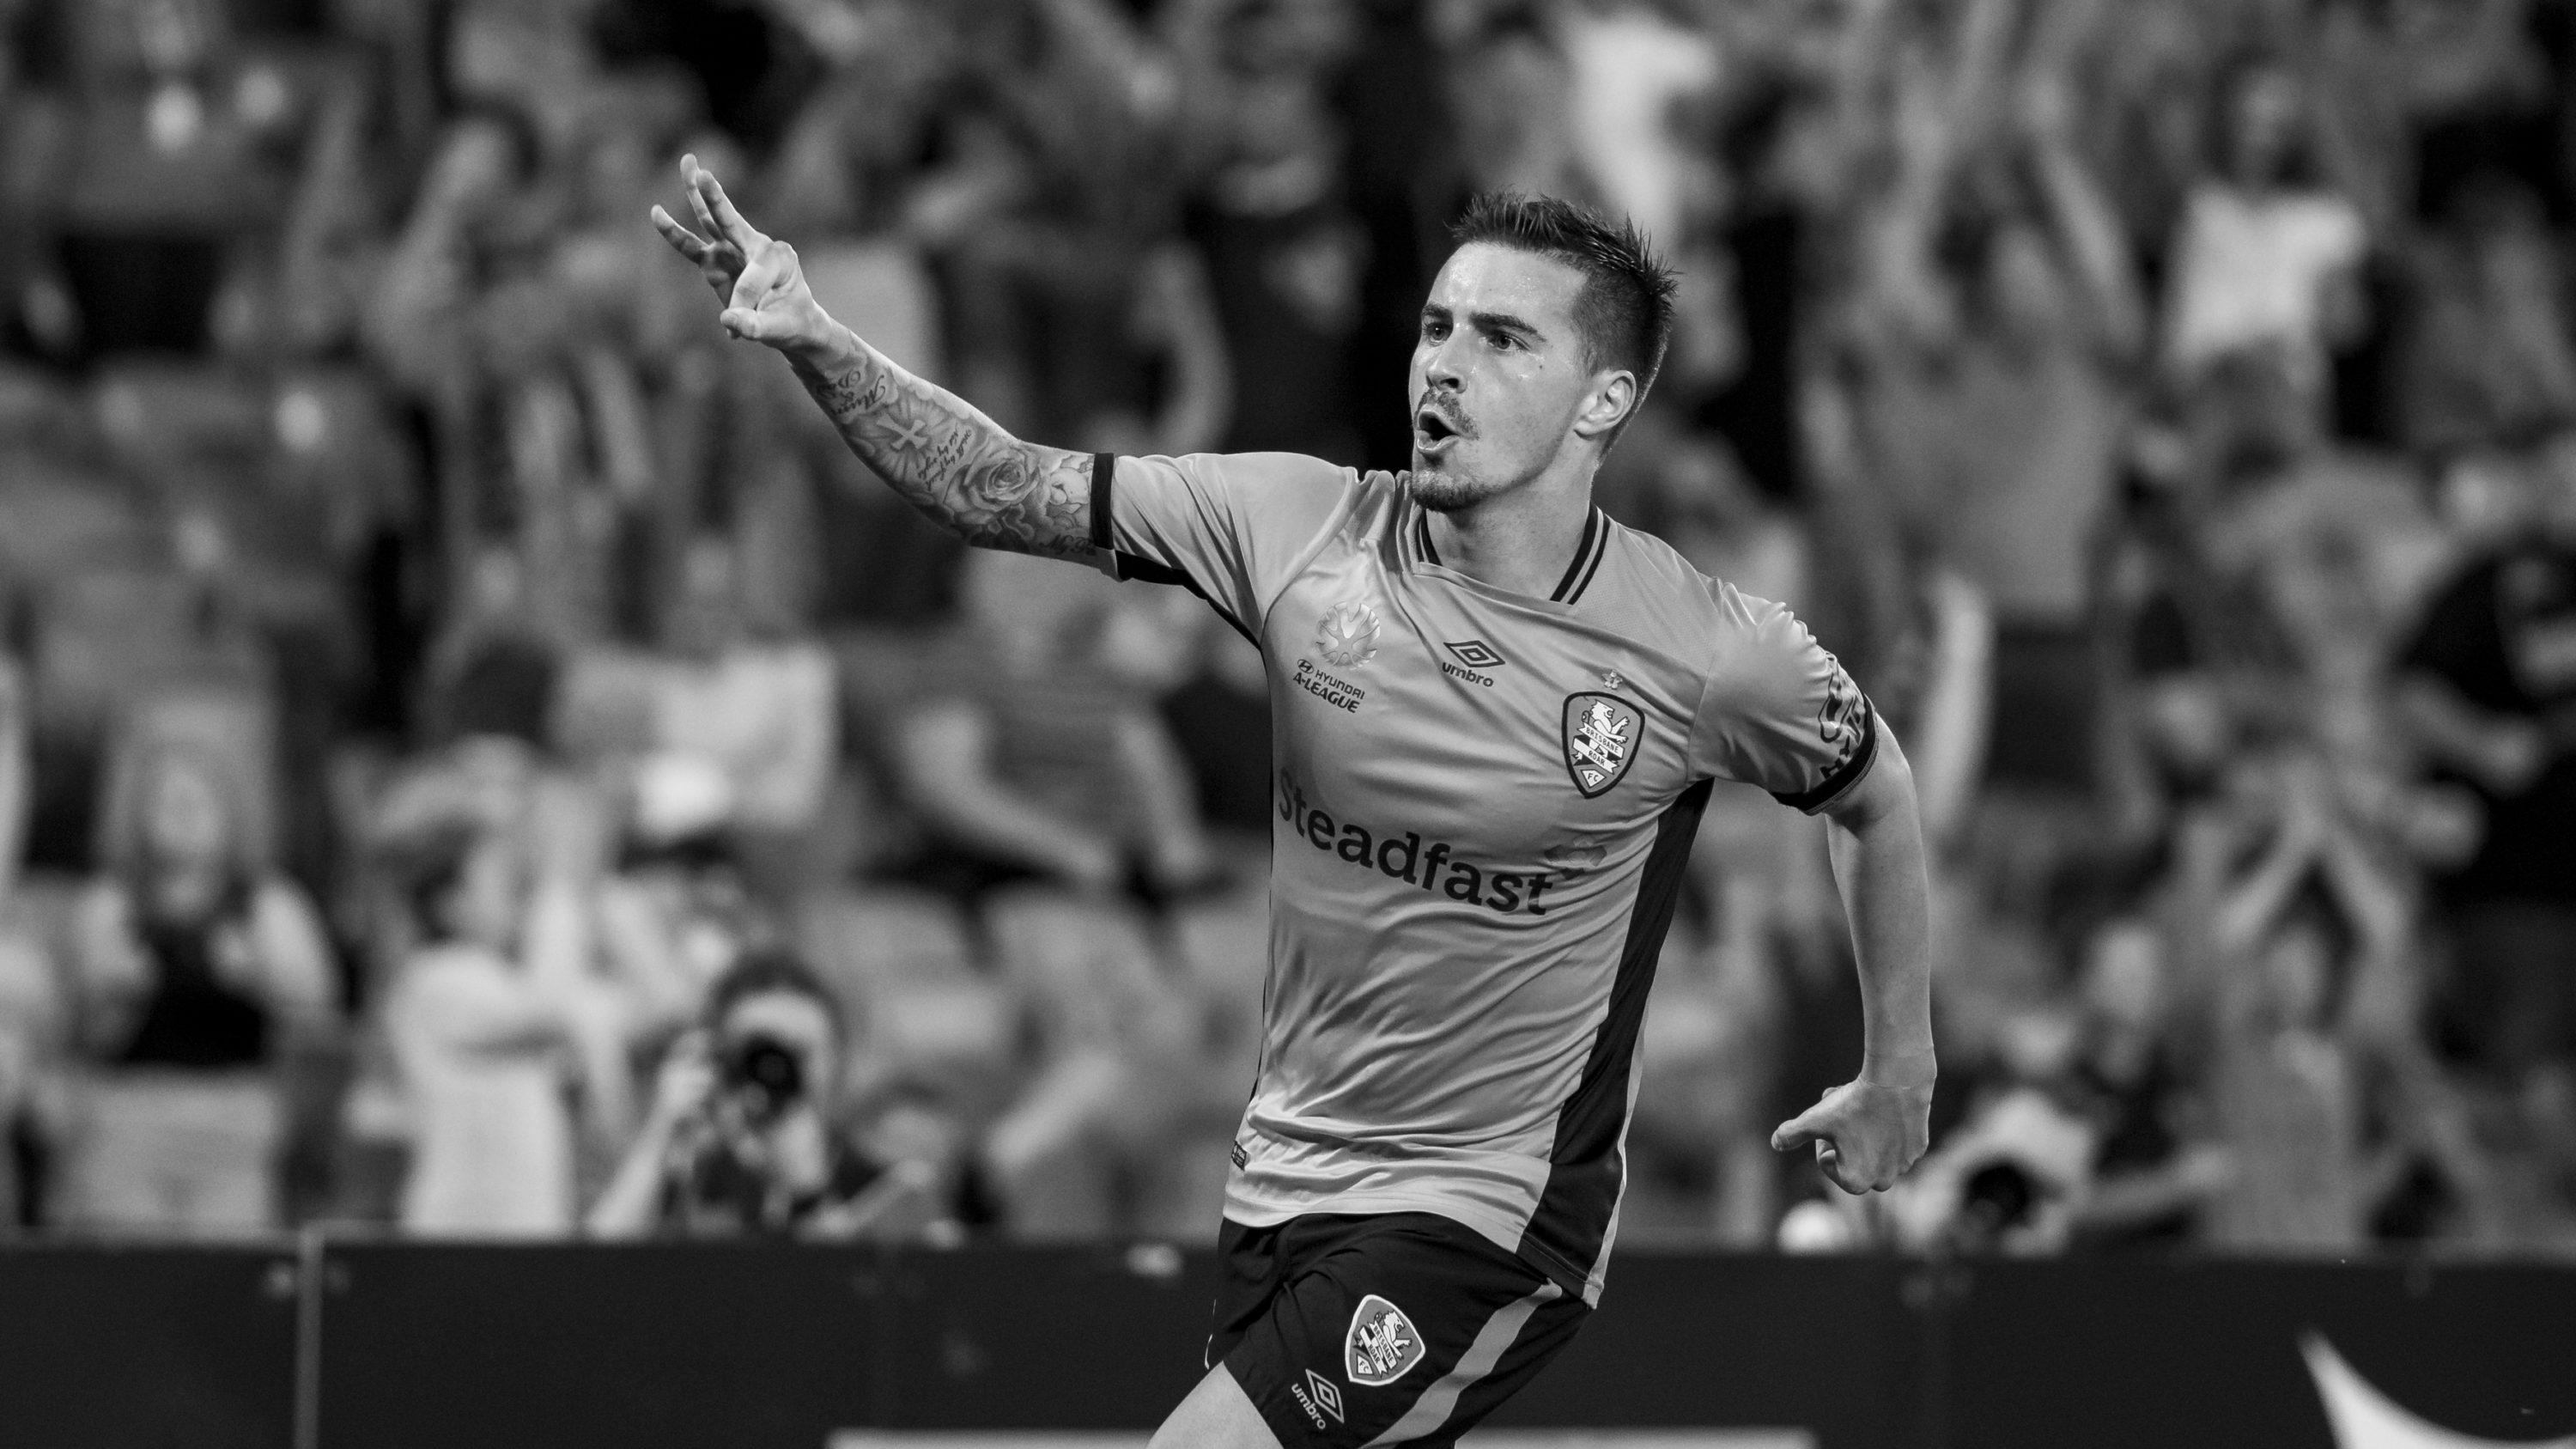 Hyundai A-League Rd 25 - Brisbane Roar v Central Coast Mariners